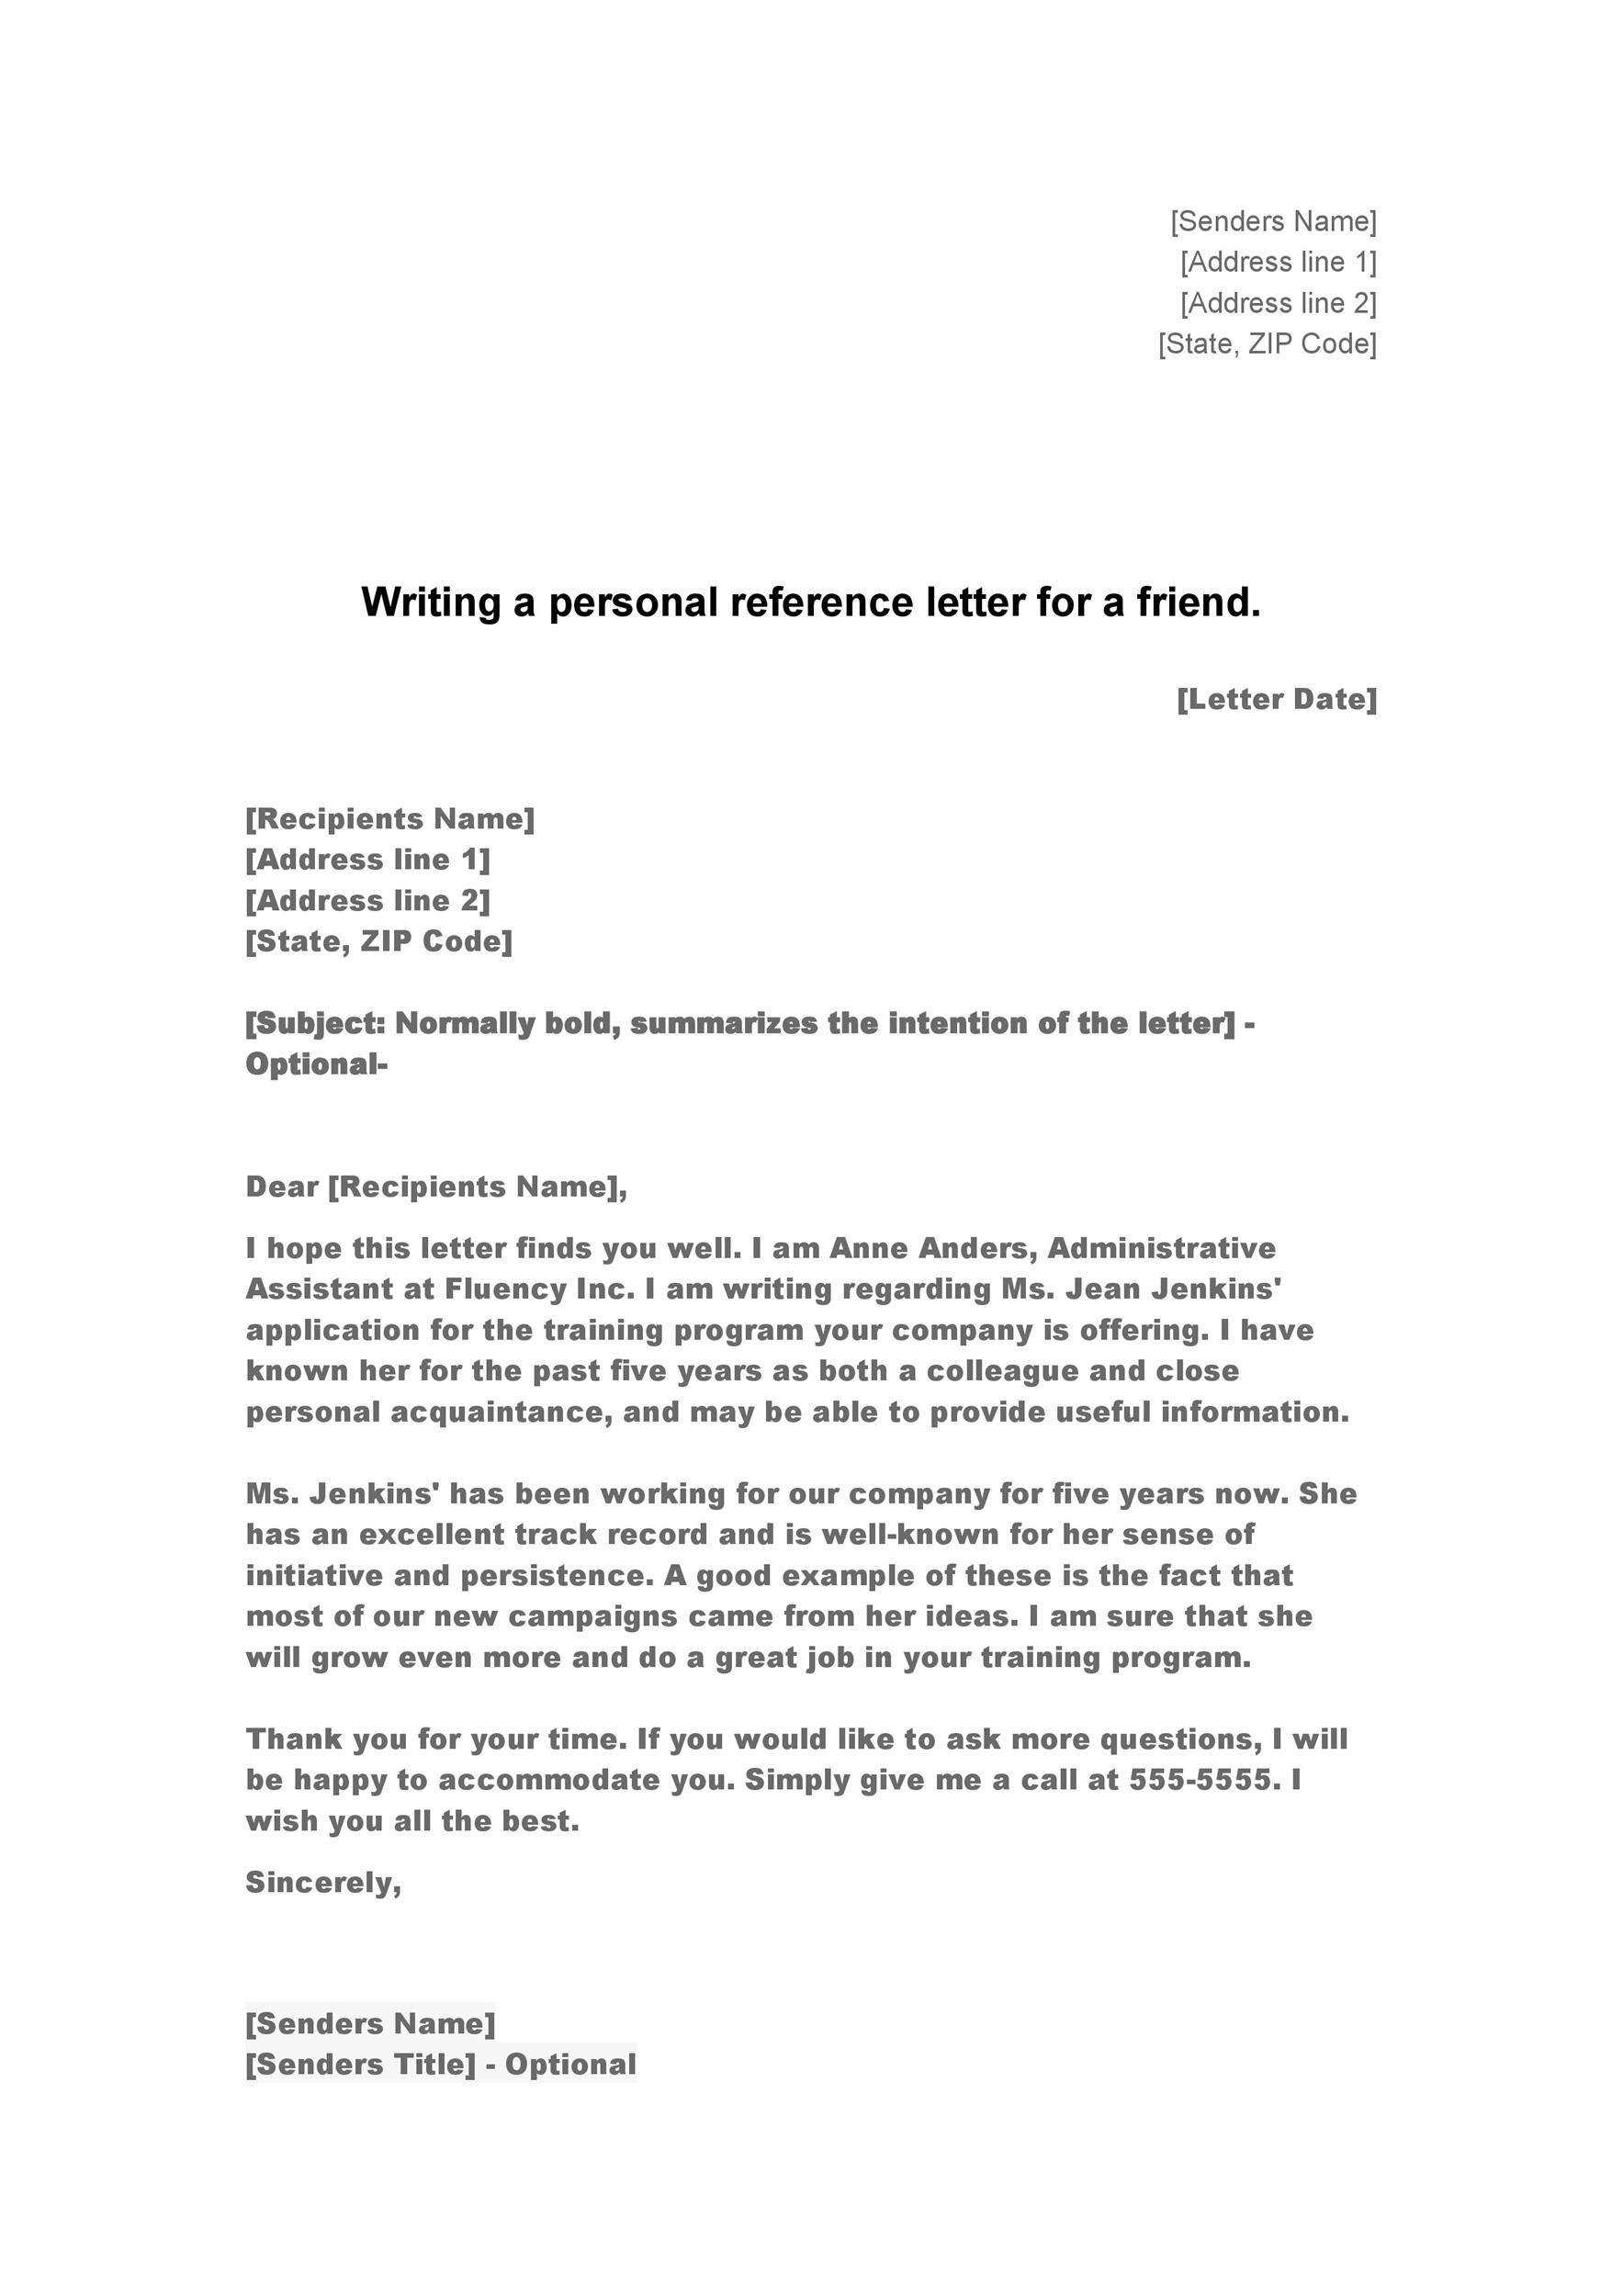 how to write a personal reference letter for a job - Maggi